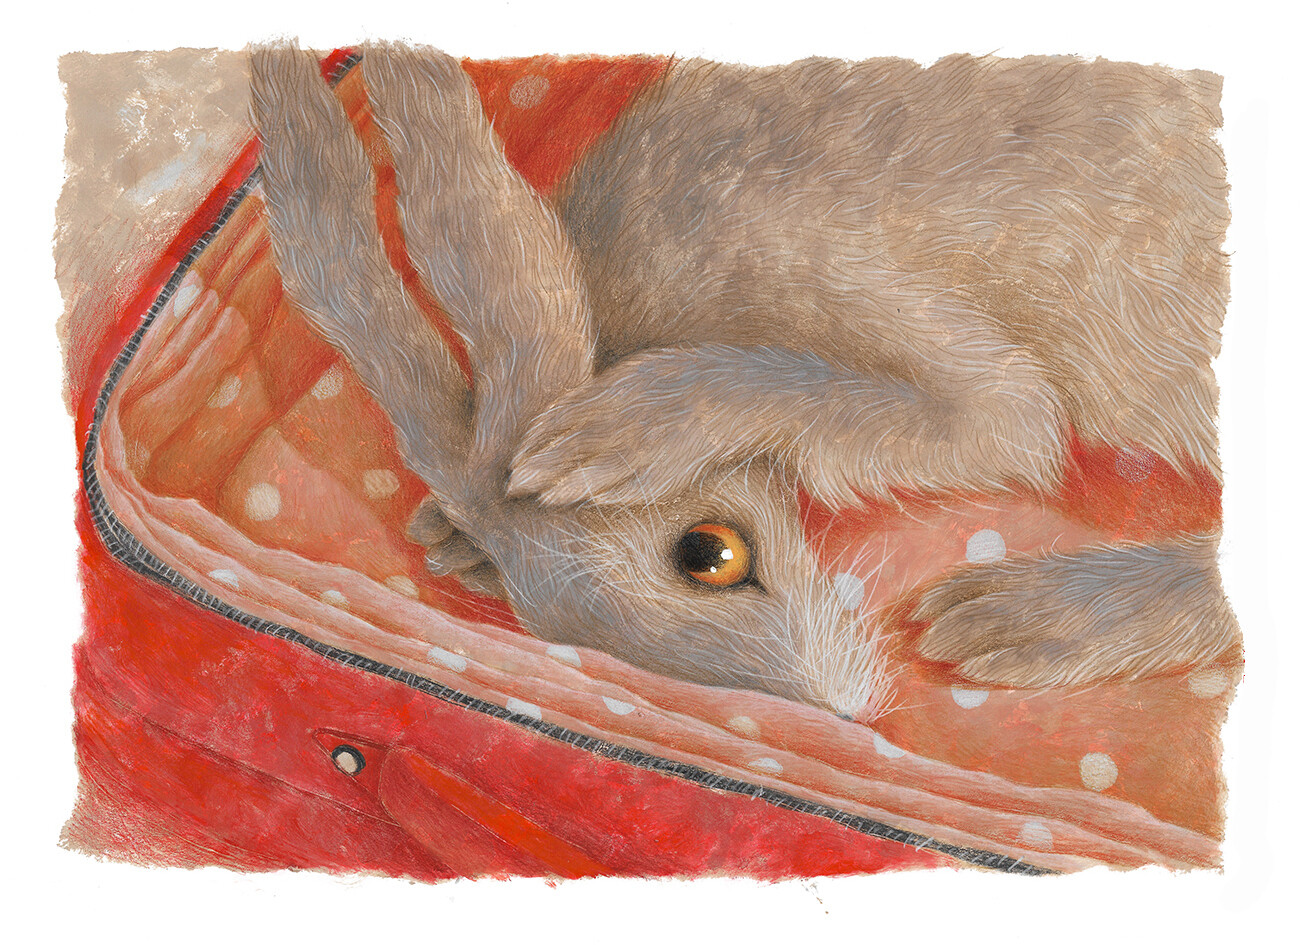 Hare in a Suitcase